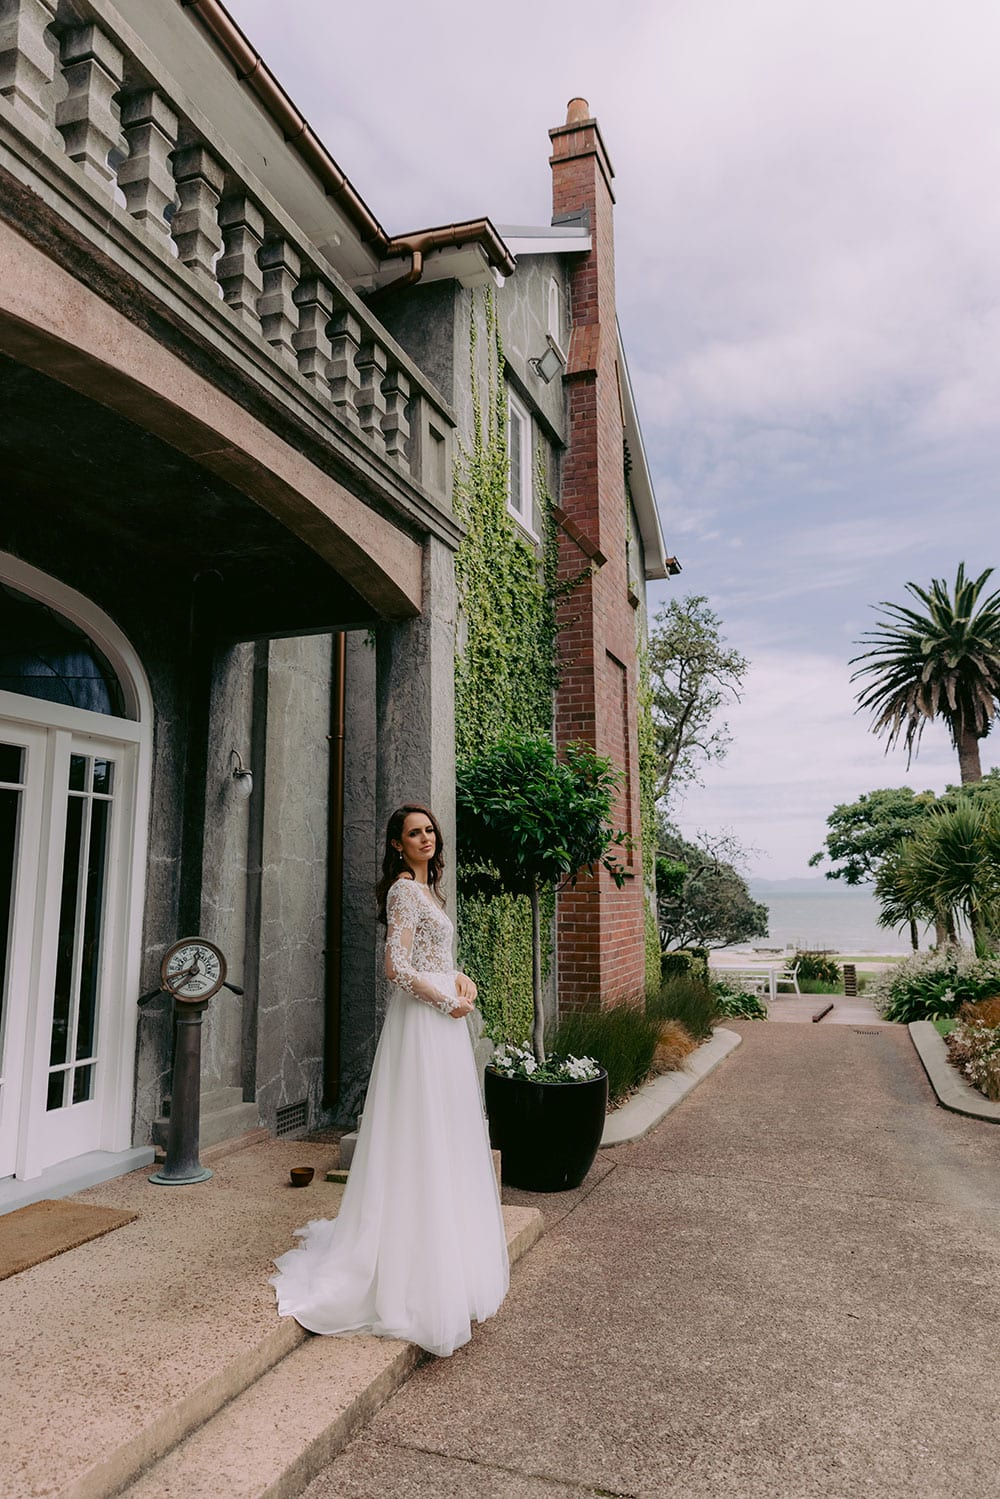 Maia Wedding gown from Vinka Design - This feminine & romantic wedding dress features beautiful pearl & bead embroidery over 3D lace. Long sleeves with pearl buttons, illusion neckline and skirt of dreamy layers of soft tulle. Model wearing gown showing full dress and dreamy skirt outside heritage building in Clevedon, near Auckland.